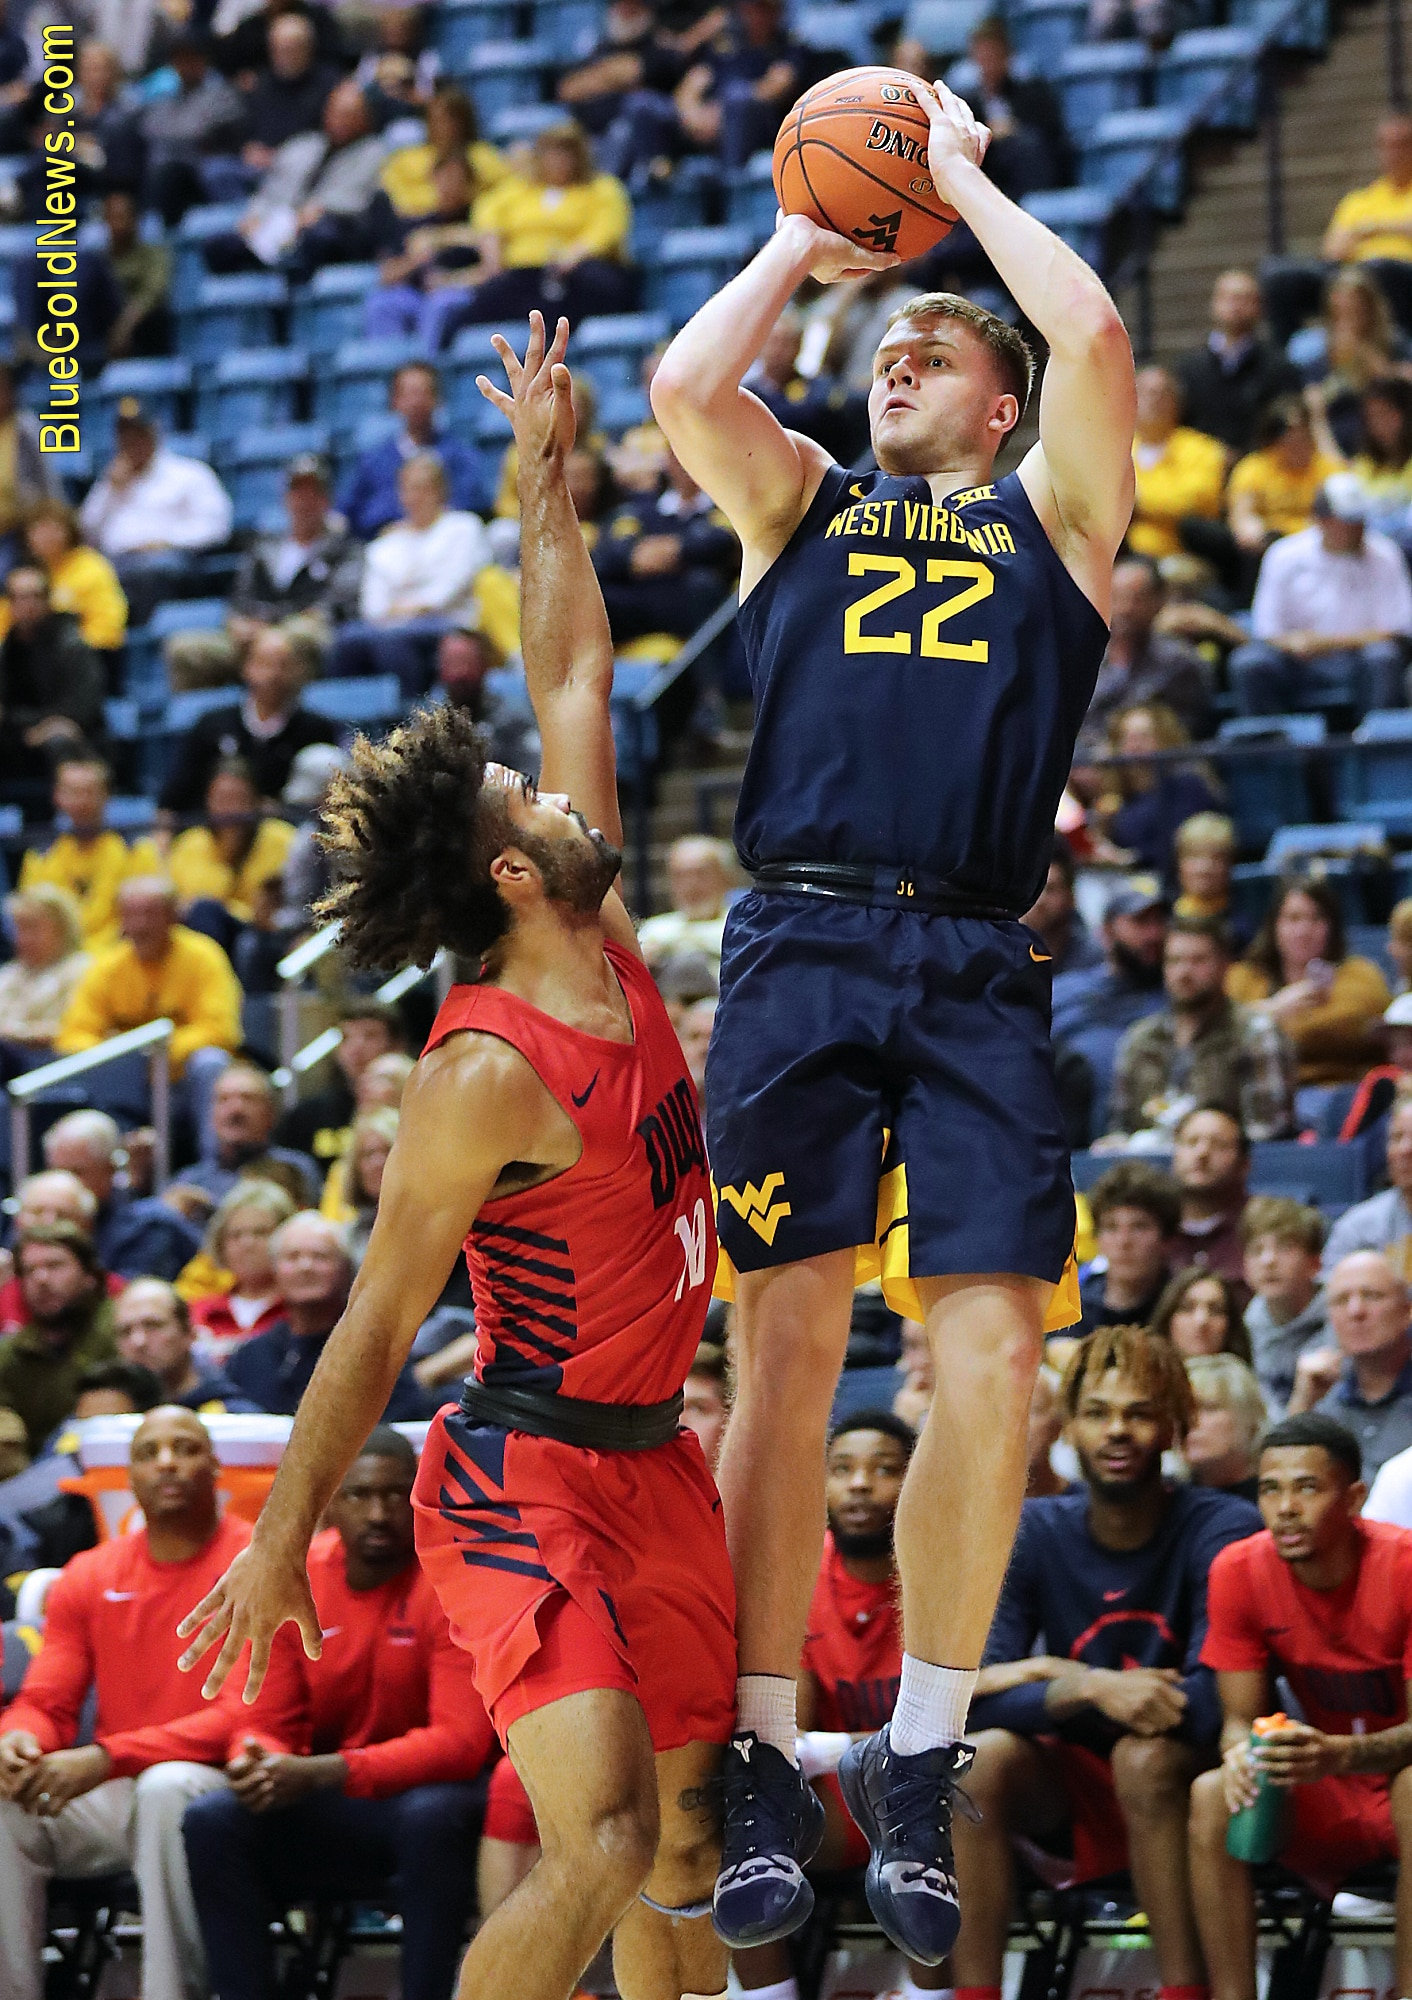 West Virginia guard Sean McNeil (22) eyes the basket on a jumper over Duquesne's Sincere Carry (10)